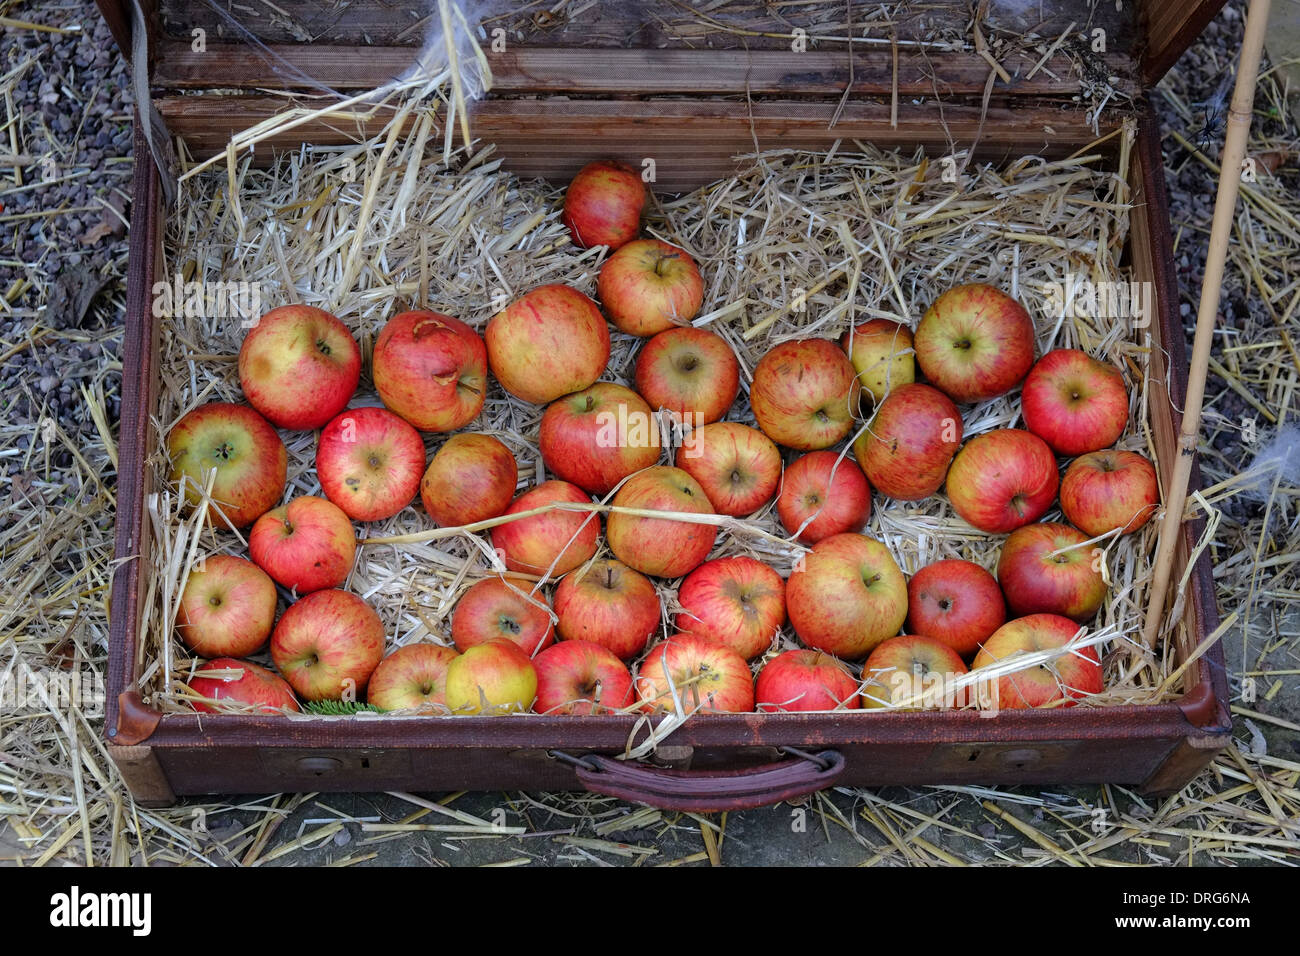 England, Cheshire, apples in an old suitcase - Stock Image